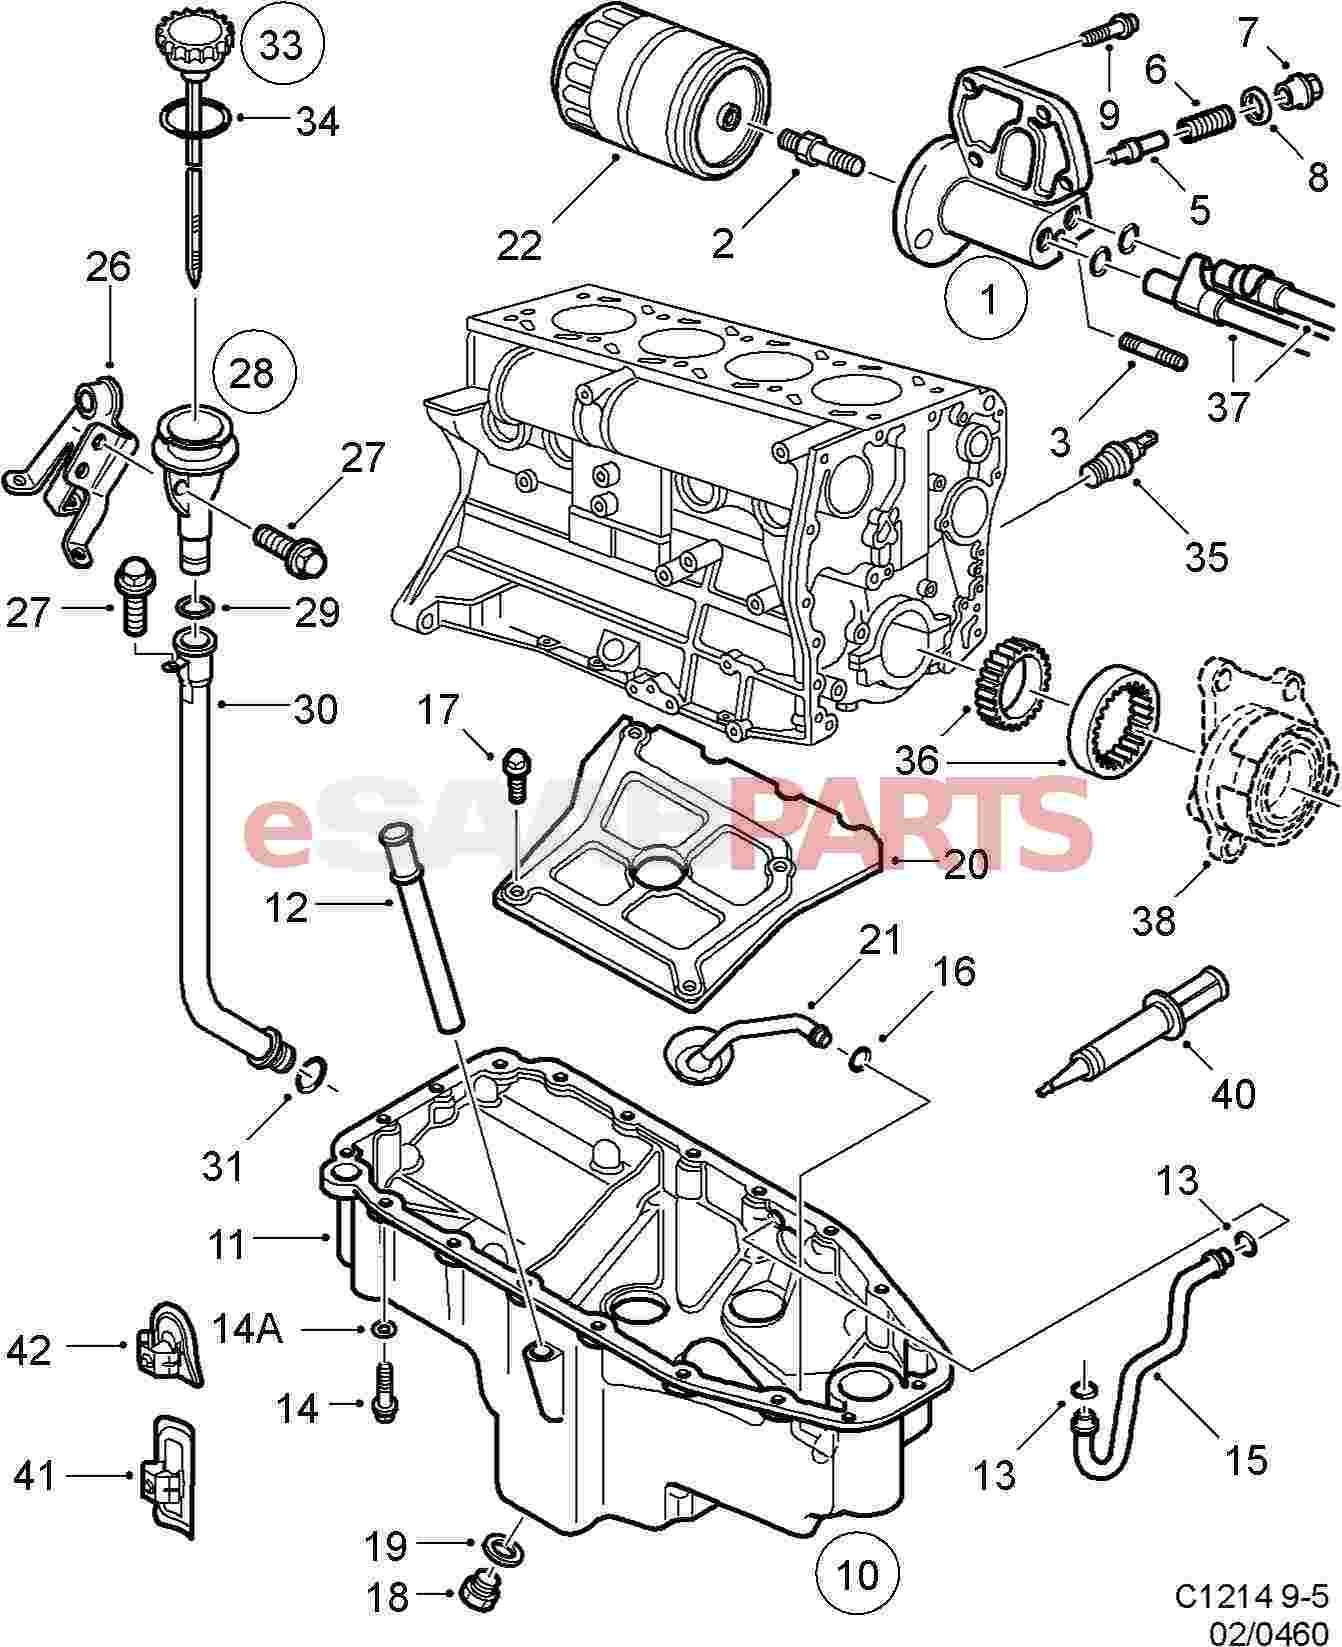 Saab 95 Engine Diagram • Wiring Diagram For Free